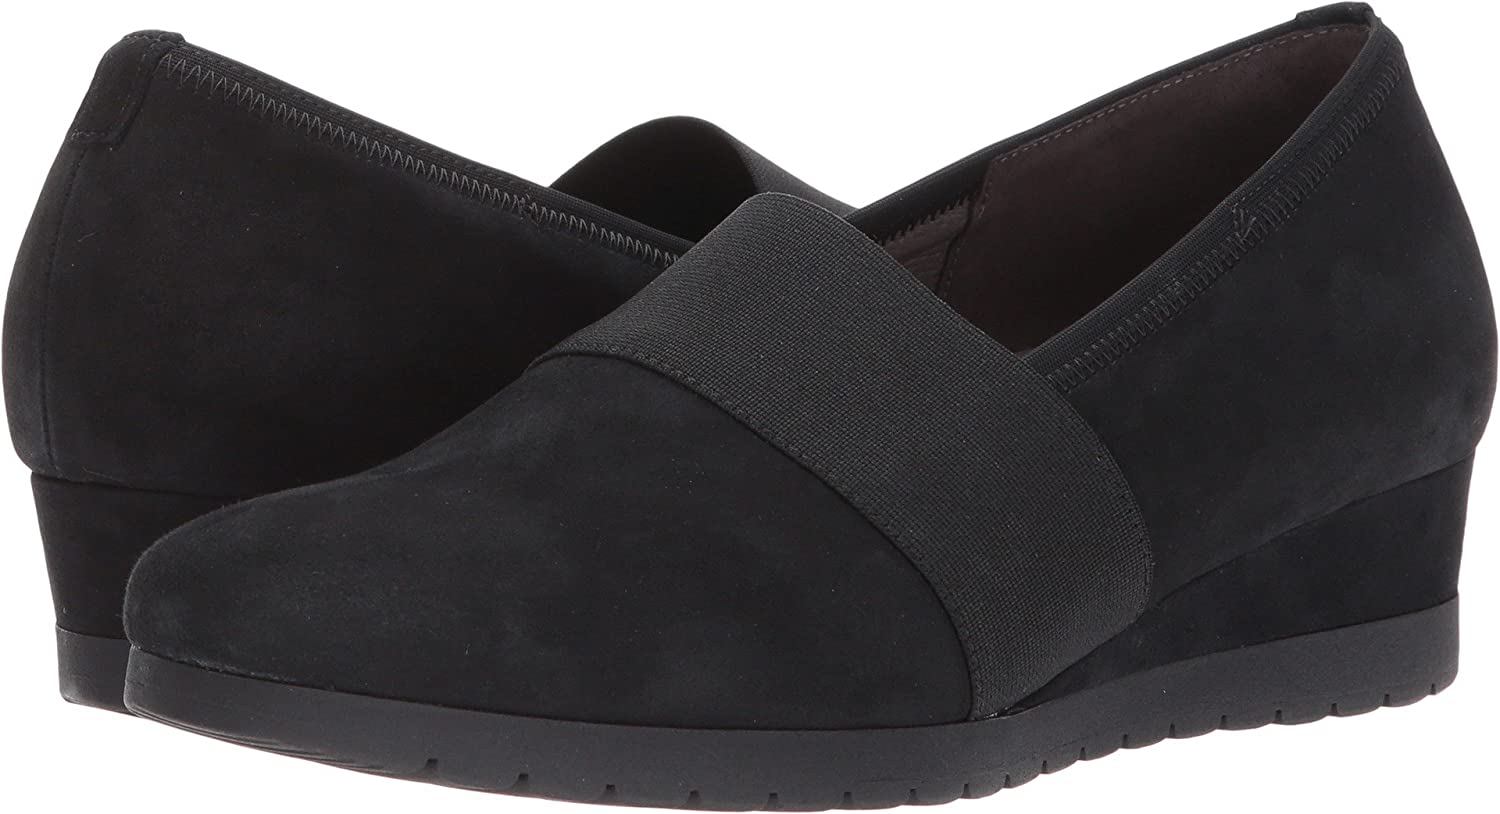 Gabor Womens 72.683 B06XHSCBYD 5 F(M) UK / 7.5 B(M) US|Black